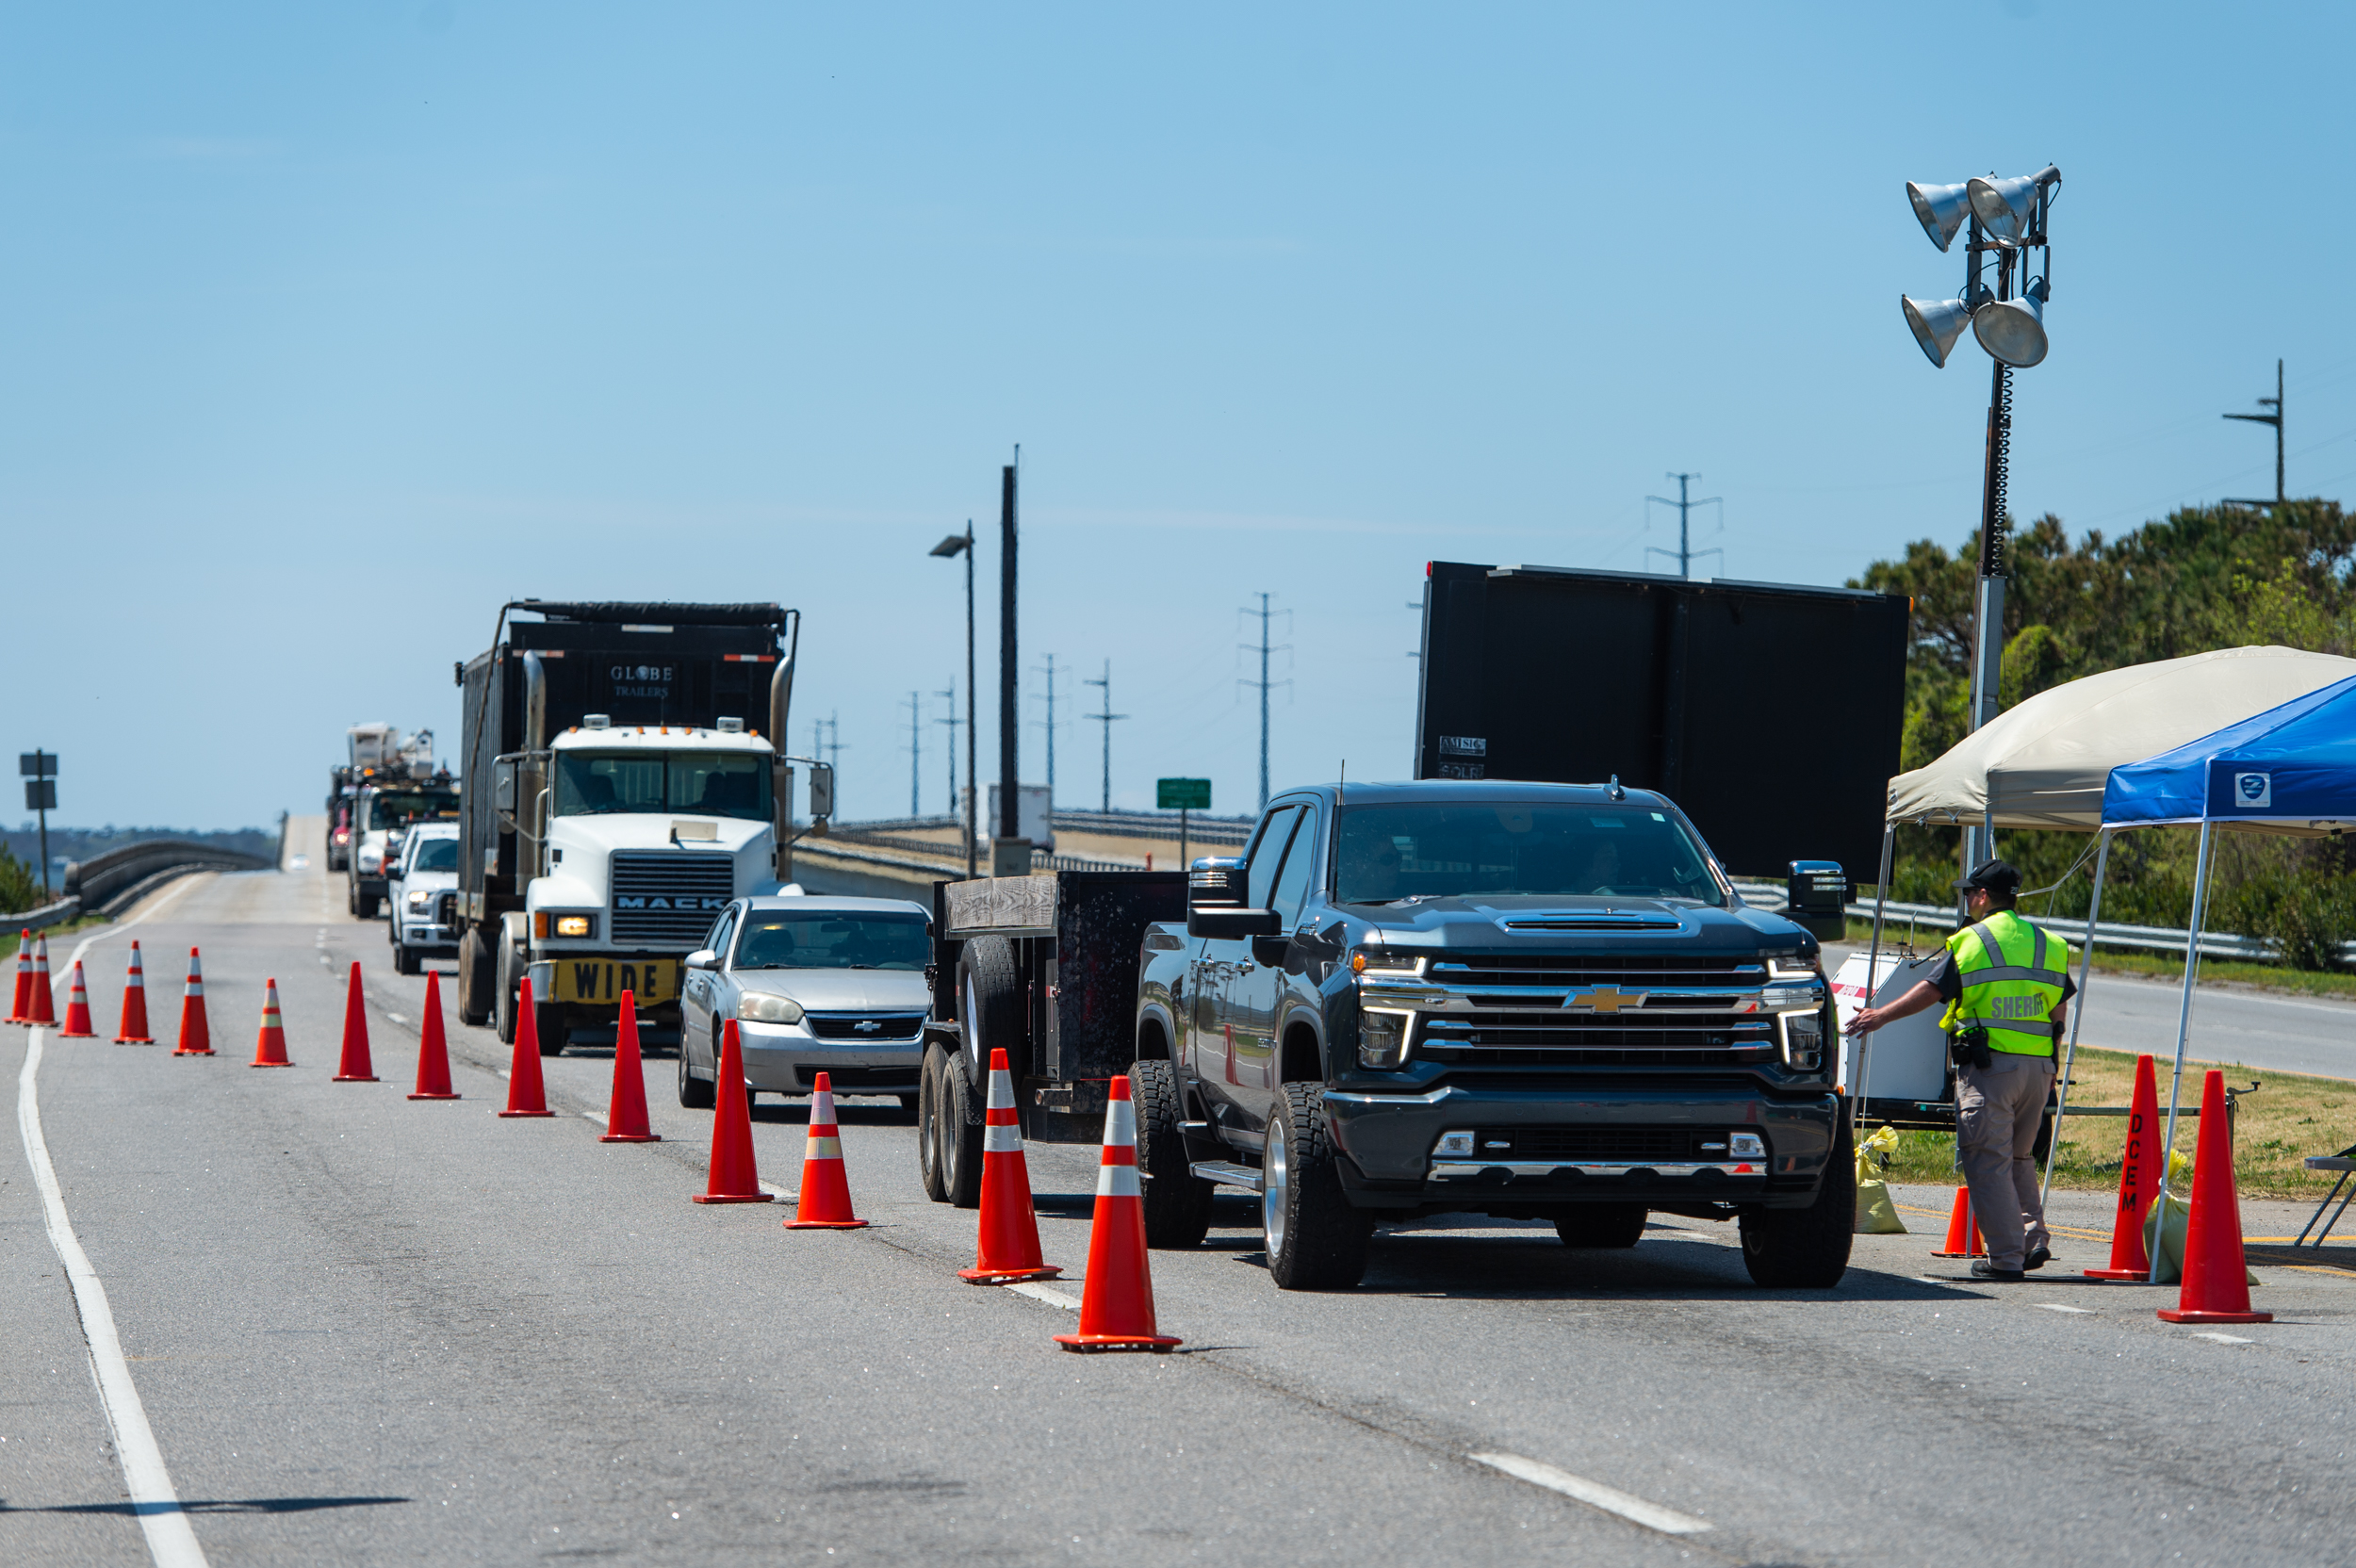 Covid 19 Checkpoints Targeting Out Of State Residents Draw Complaints And Legal Scrutiny The Washington Post